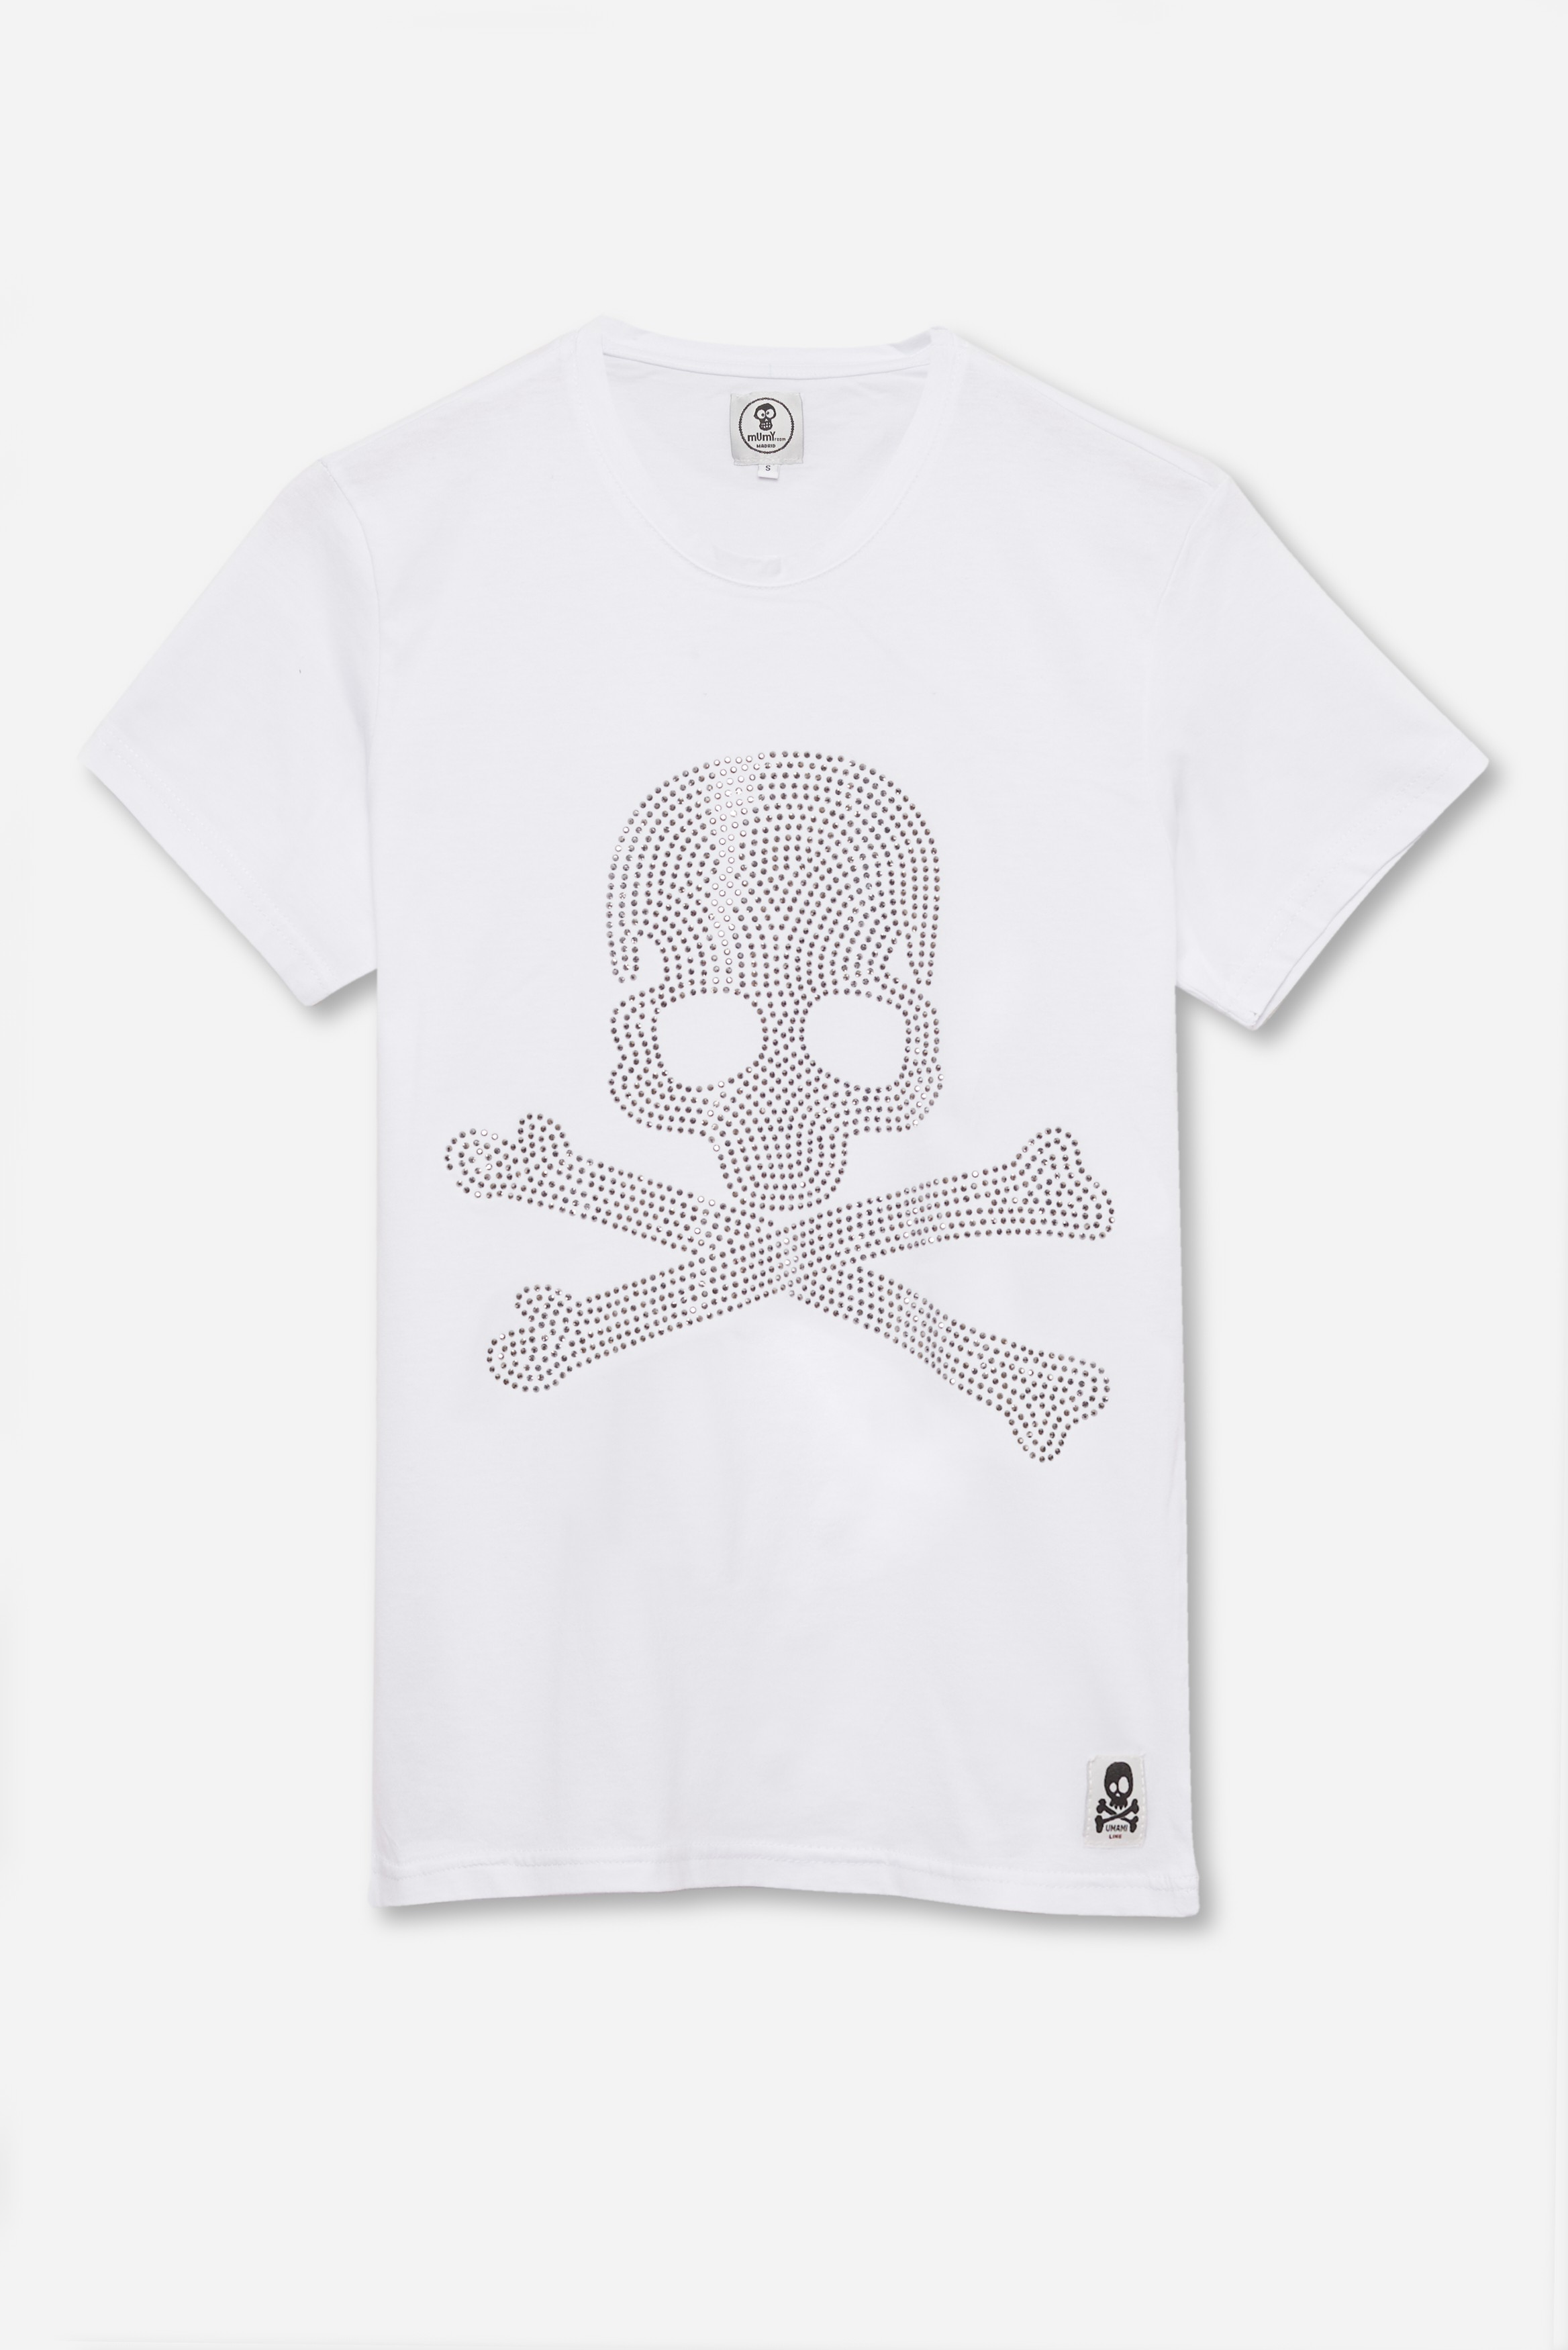 ADULT'S PRINTED SKULL DOTS IN WHITE